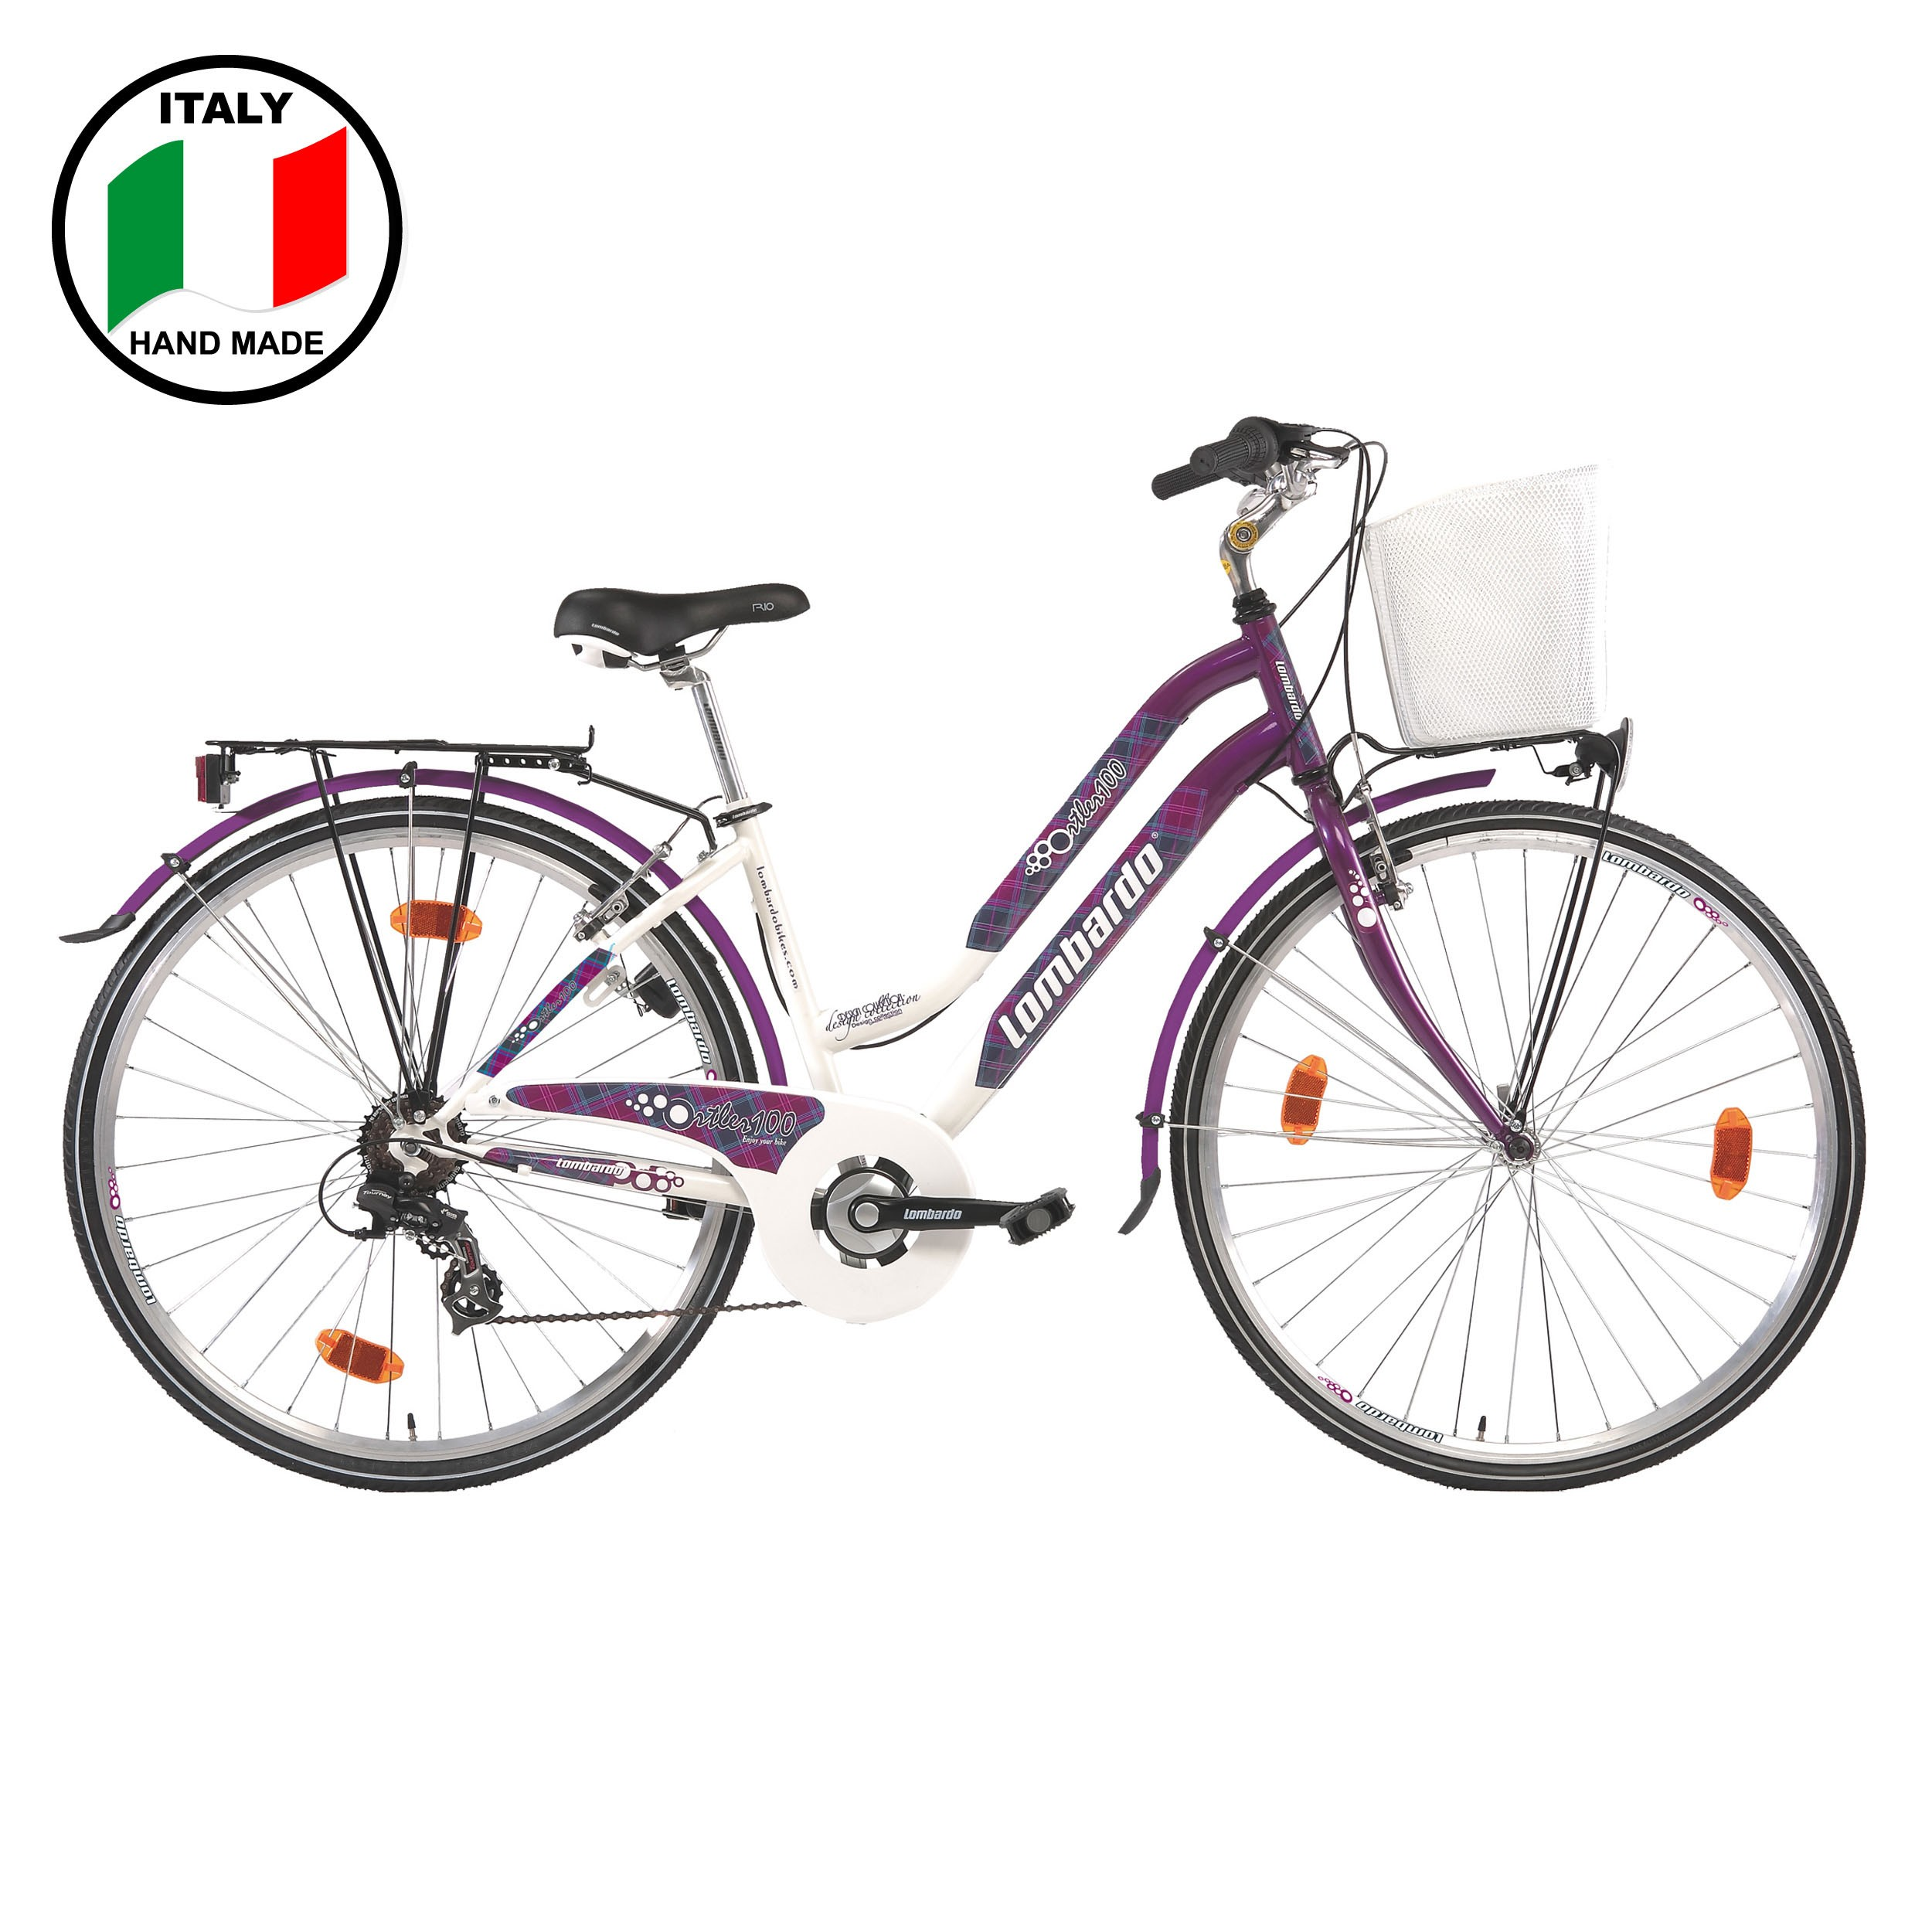 Lombardo Ortler 100 28 inch Women's Bike- Purple  and White